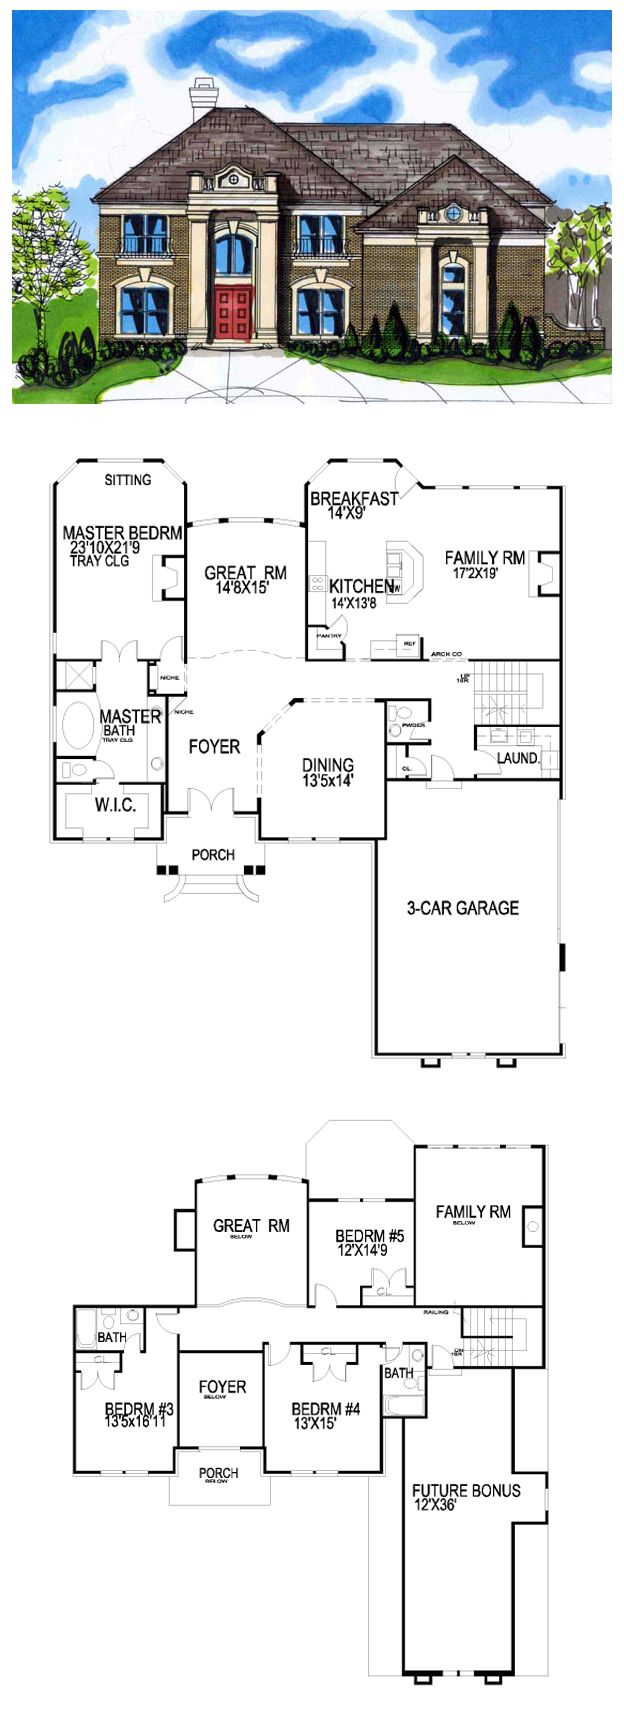 GreekRevival HousePlan 56835 Has 3426 Square Feet 38066m2 Of Living Space 4 Bedrooms And Three Bathrooms Downstairs 3 Car Garage Formal Dining Room